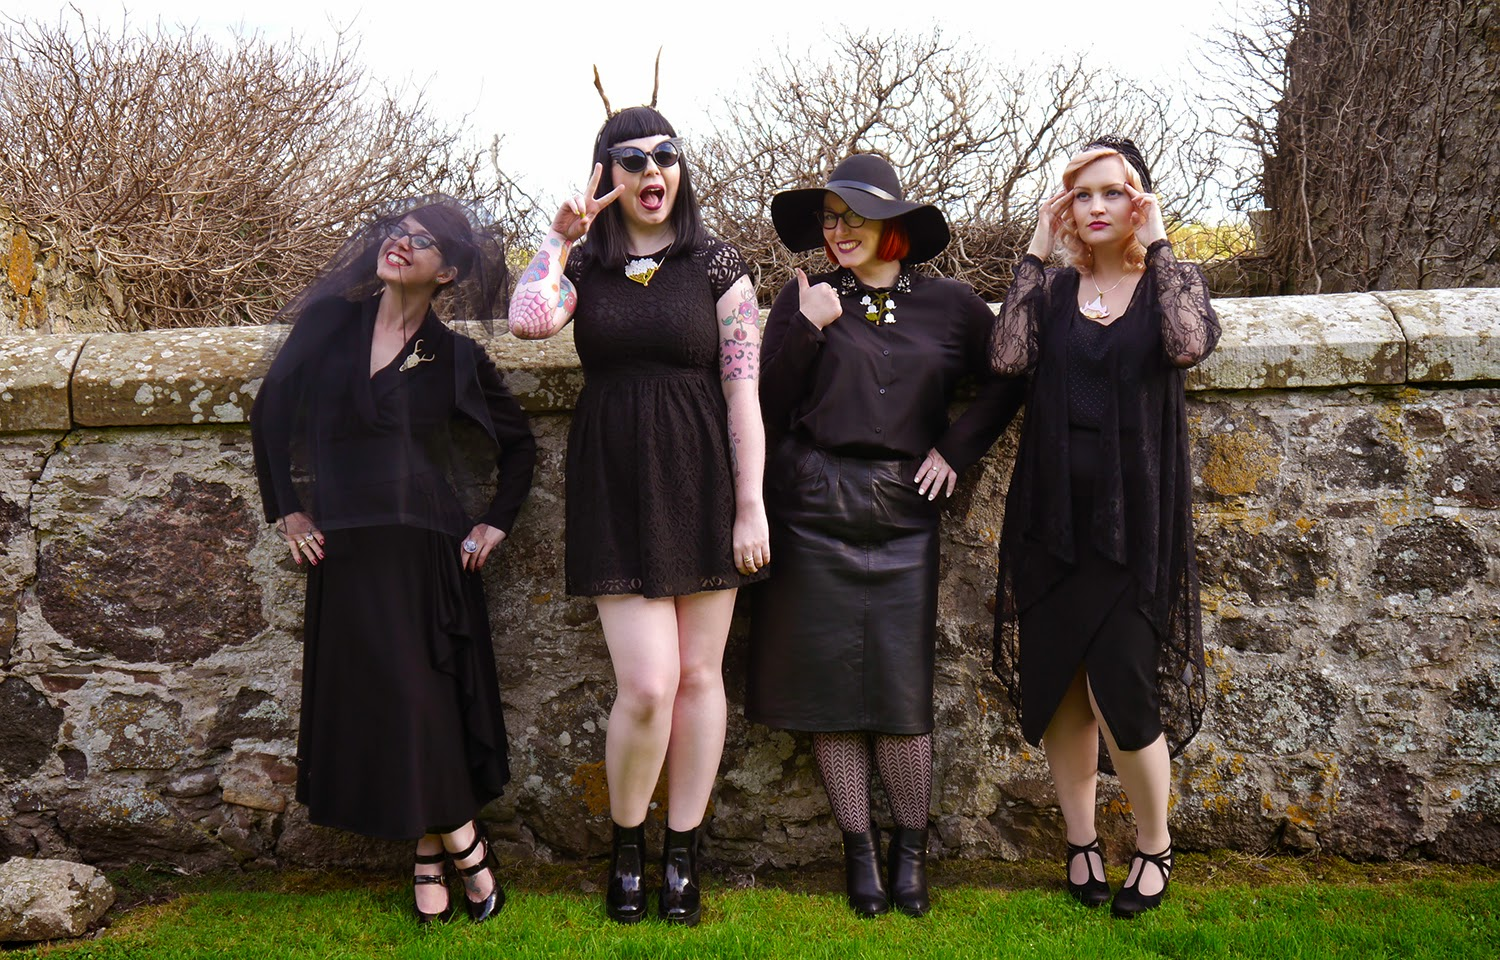 Halloween Girl Gang, #halloweengirlgang, witch style, gothis style, goth, Coven outfit, American Horror Story Style, Miss West End Girl, Miss Vicky Viola, Wardrobe Conversations, Halloween outfit inspiration, witch costume, costume inspiration, Halloween ideas